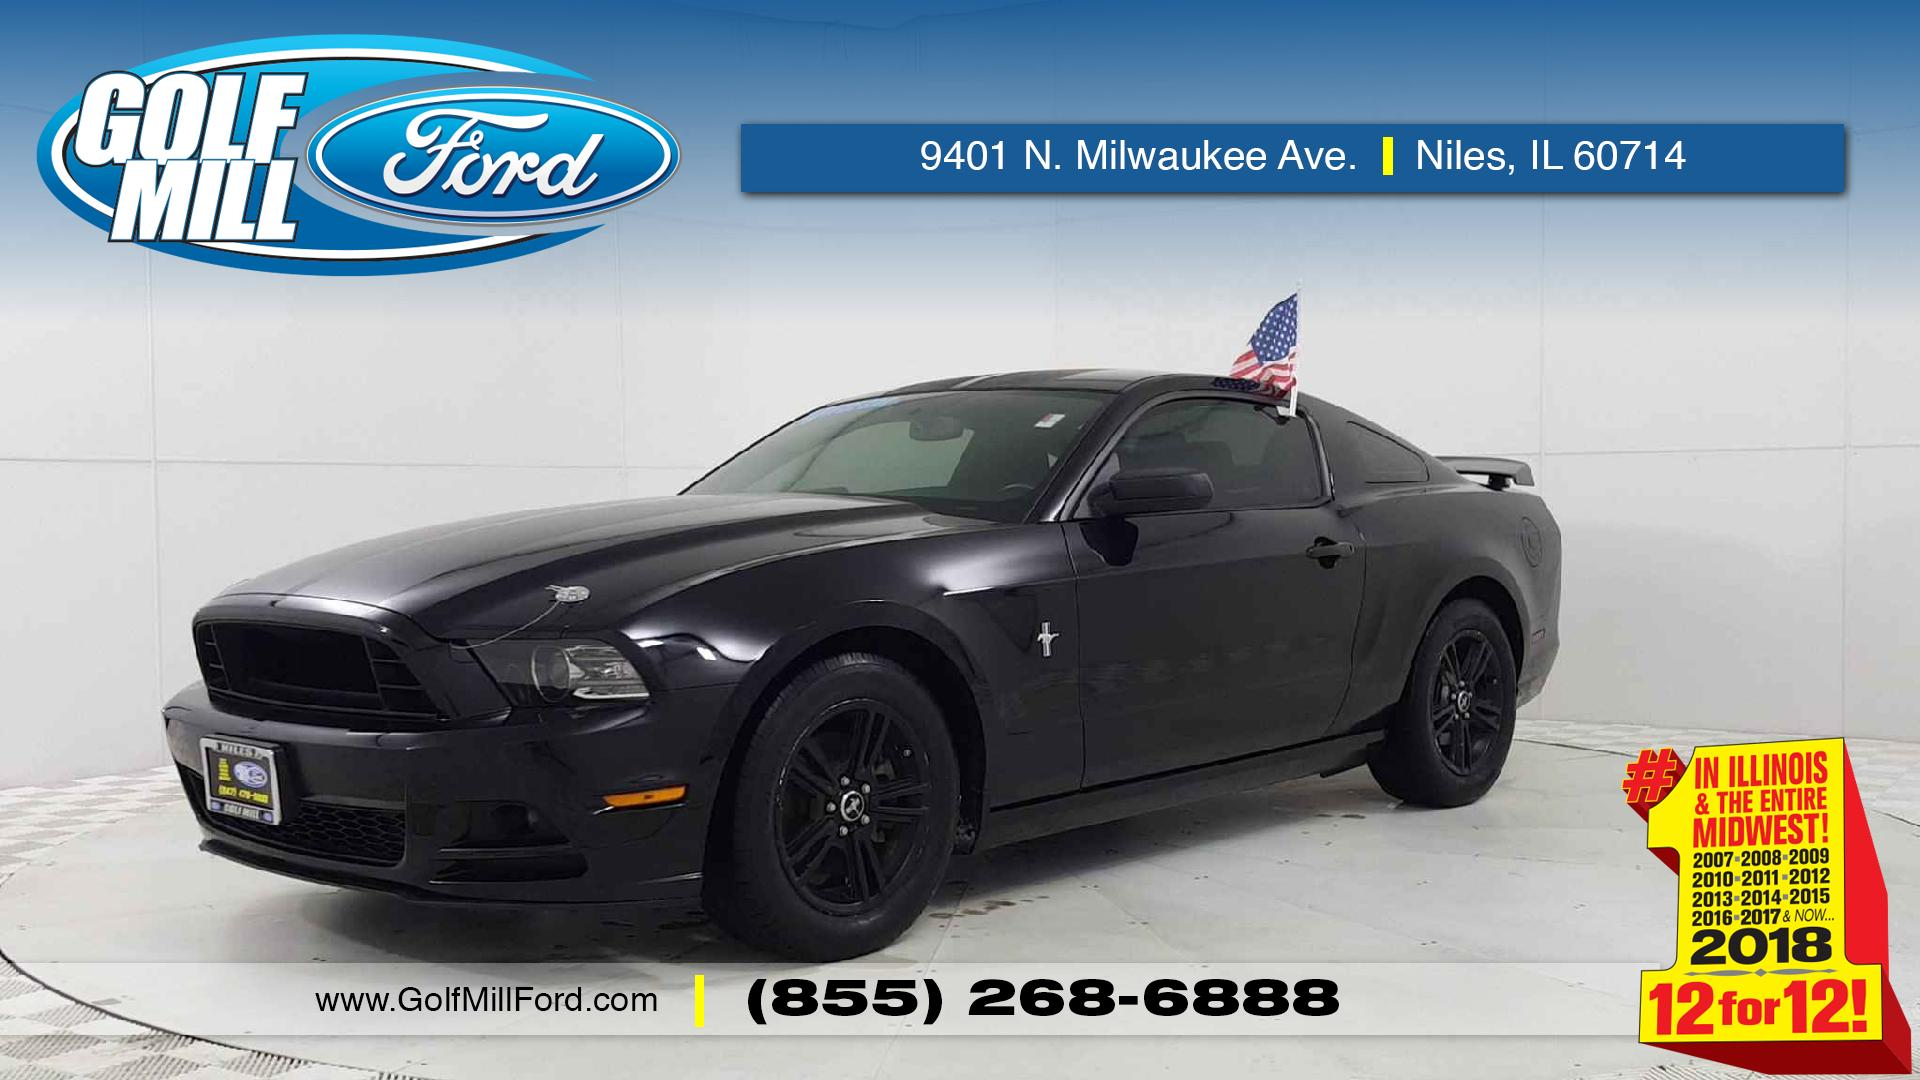 Used Mustang for Sale in Niles IL Golf Mill Ford